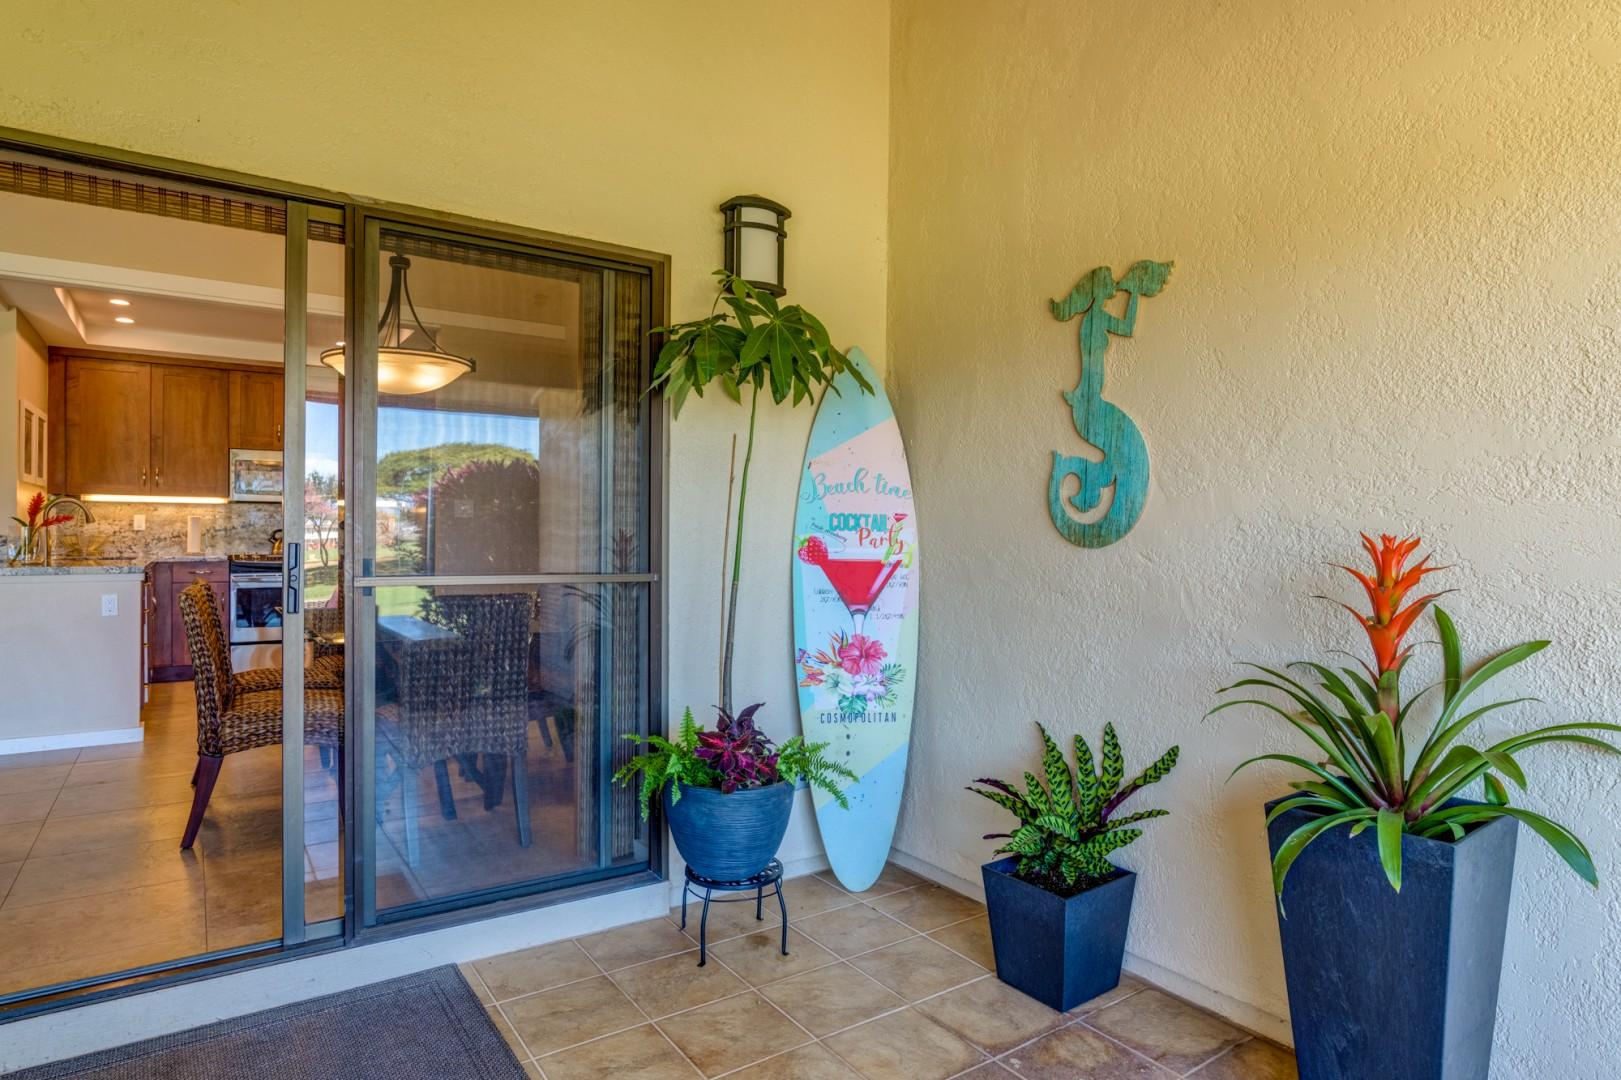 3 different sliding doors to access the lanai